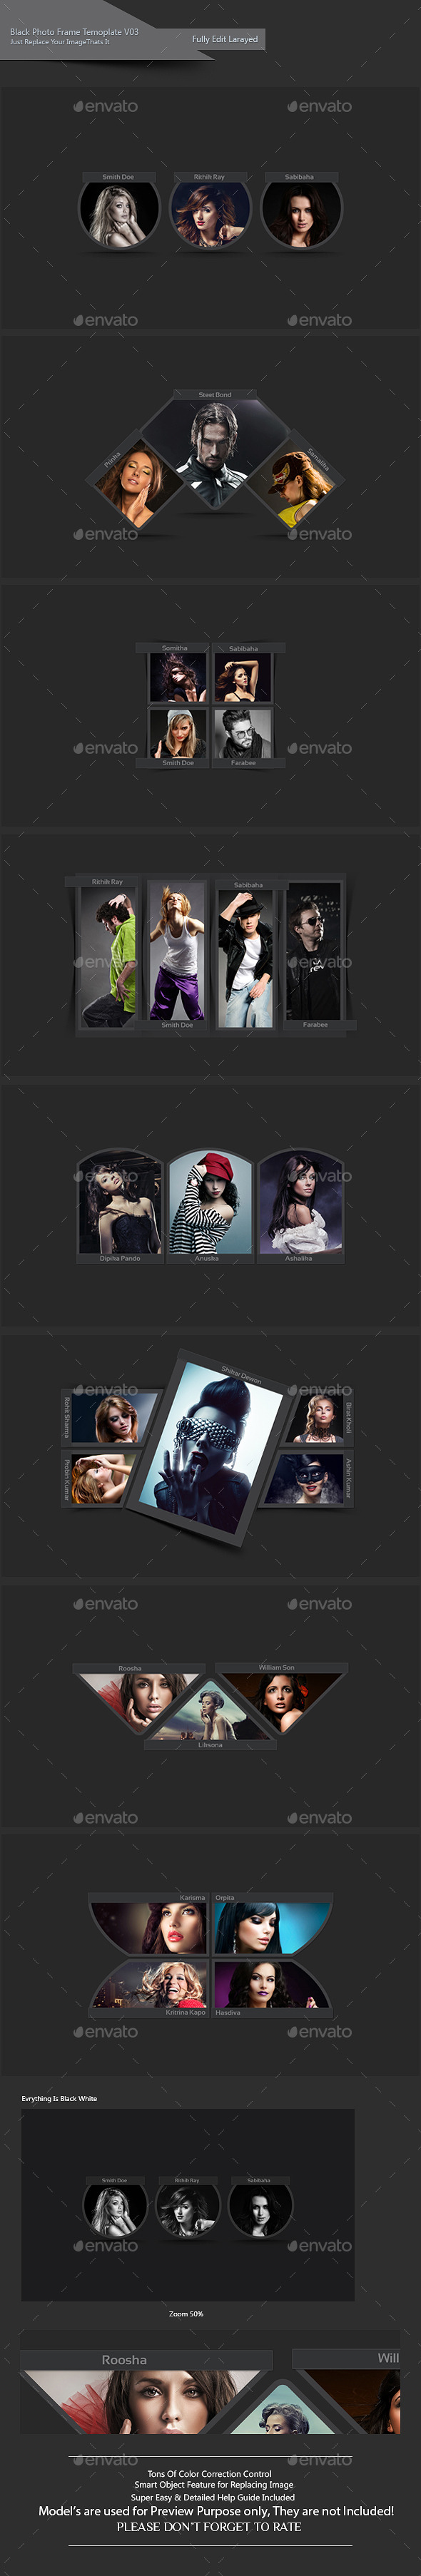 Black Photo Frame Template V03 - Photo Templates Graphics